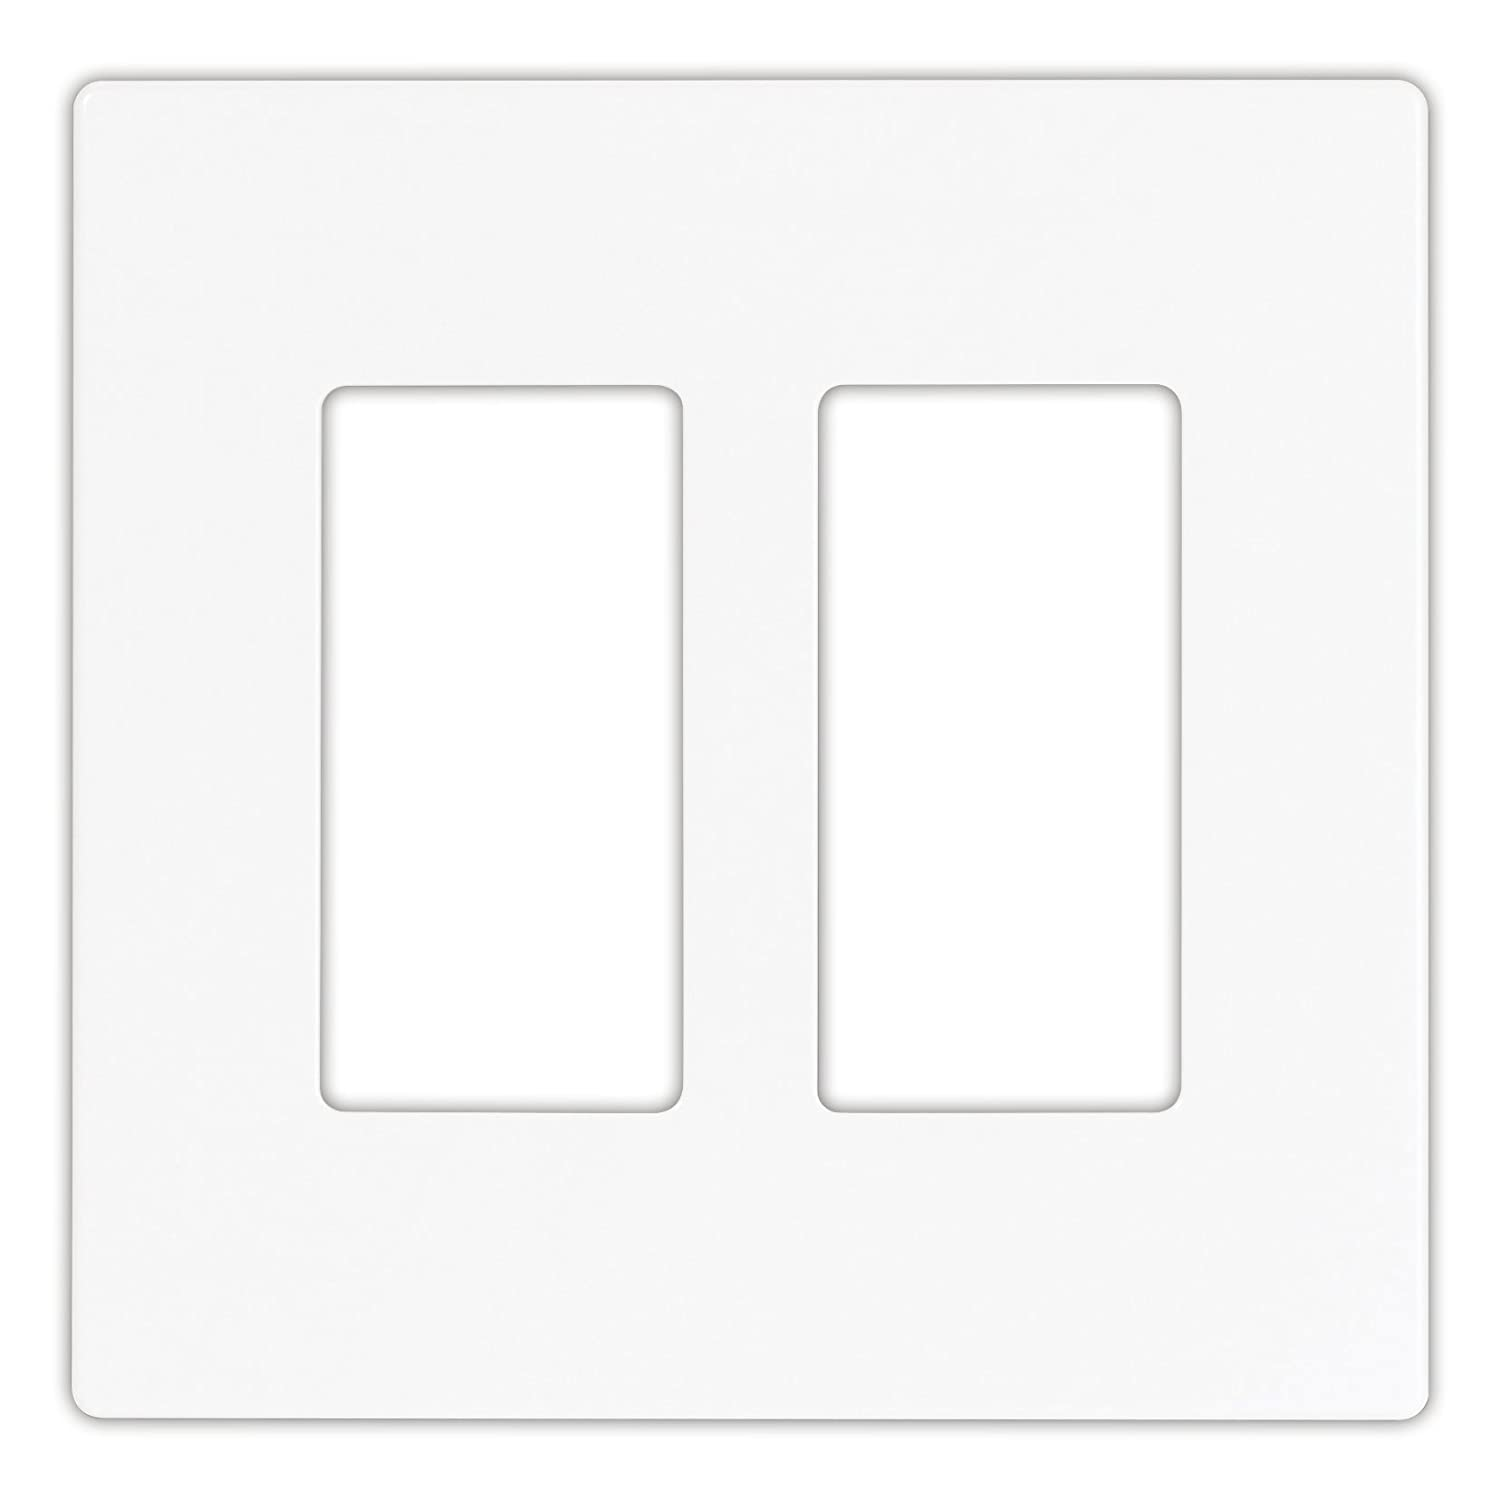 EATON 9522WS Aspire 9522 Decorative Mid Size Screw less Wall Plate, 2 Gang 4-1/2 In L X 4.56 In W 0.08 In T, Satin, White